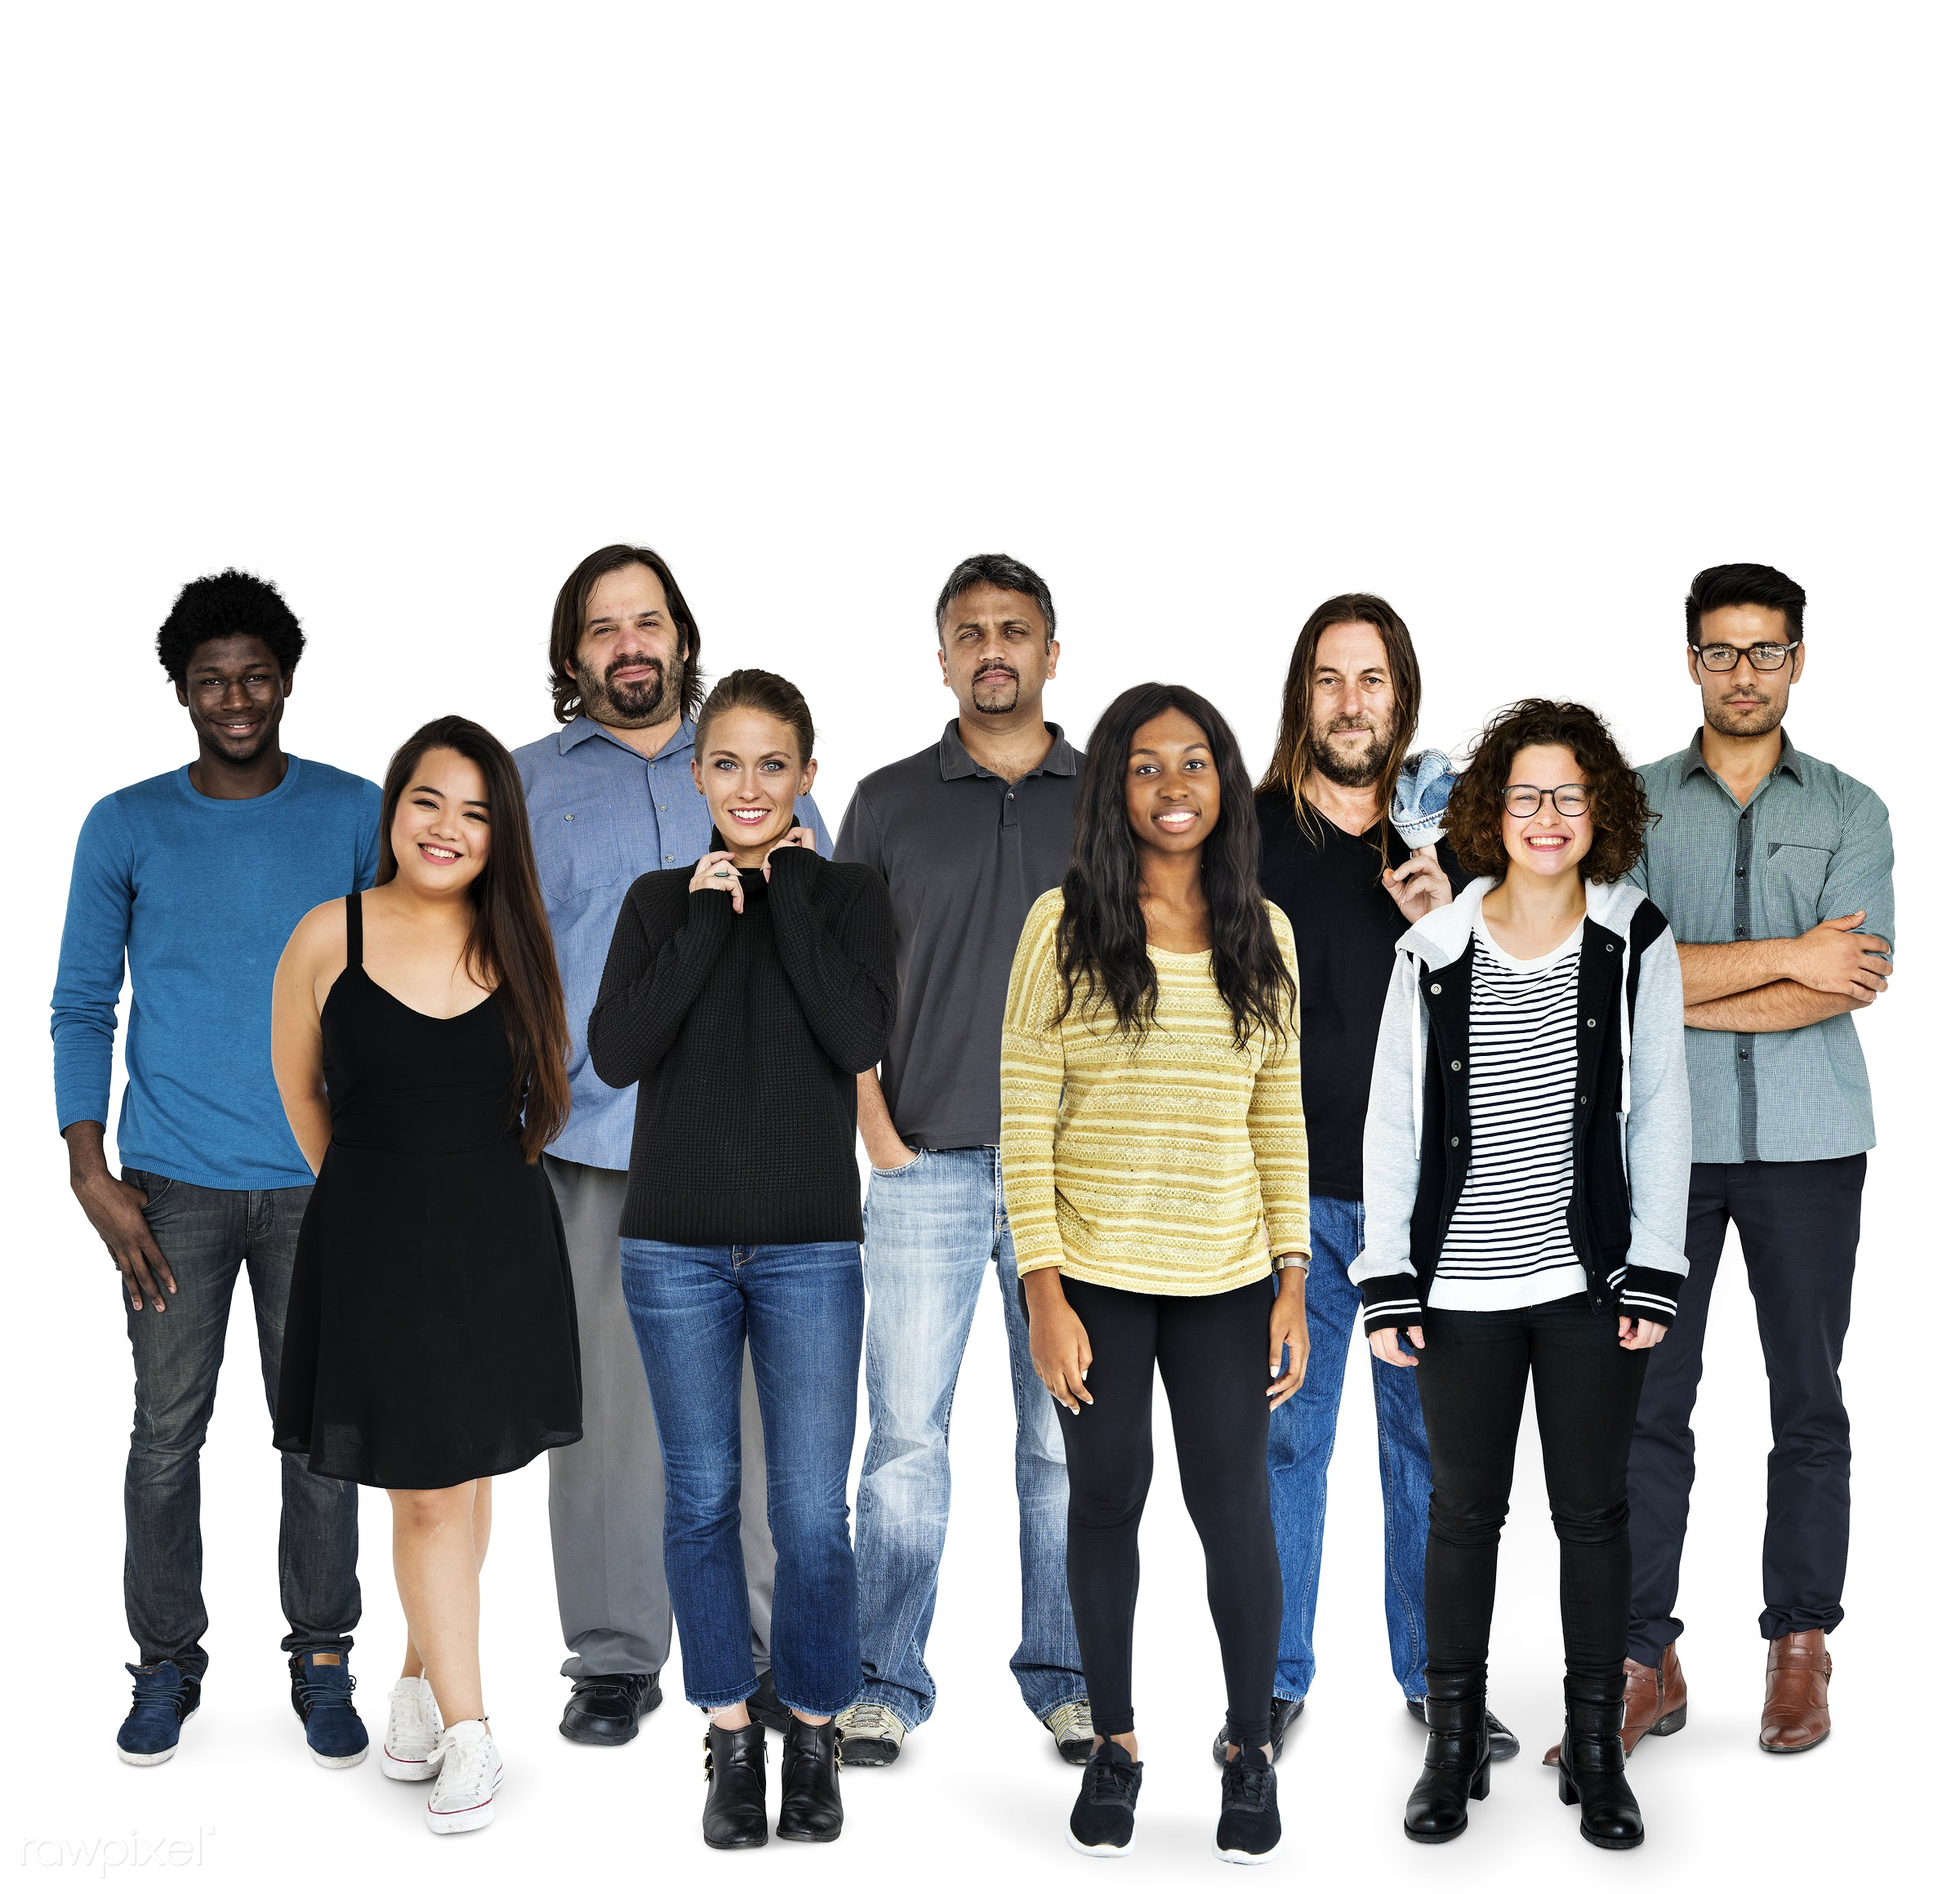 Diverse people set - gentlemen, studio, person, diverse, people, attraction, together, caucasian, asian, young adult, black...